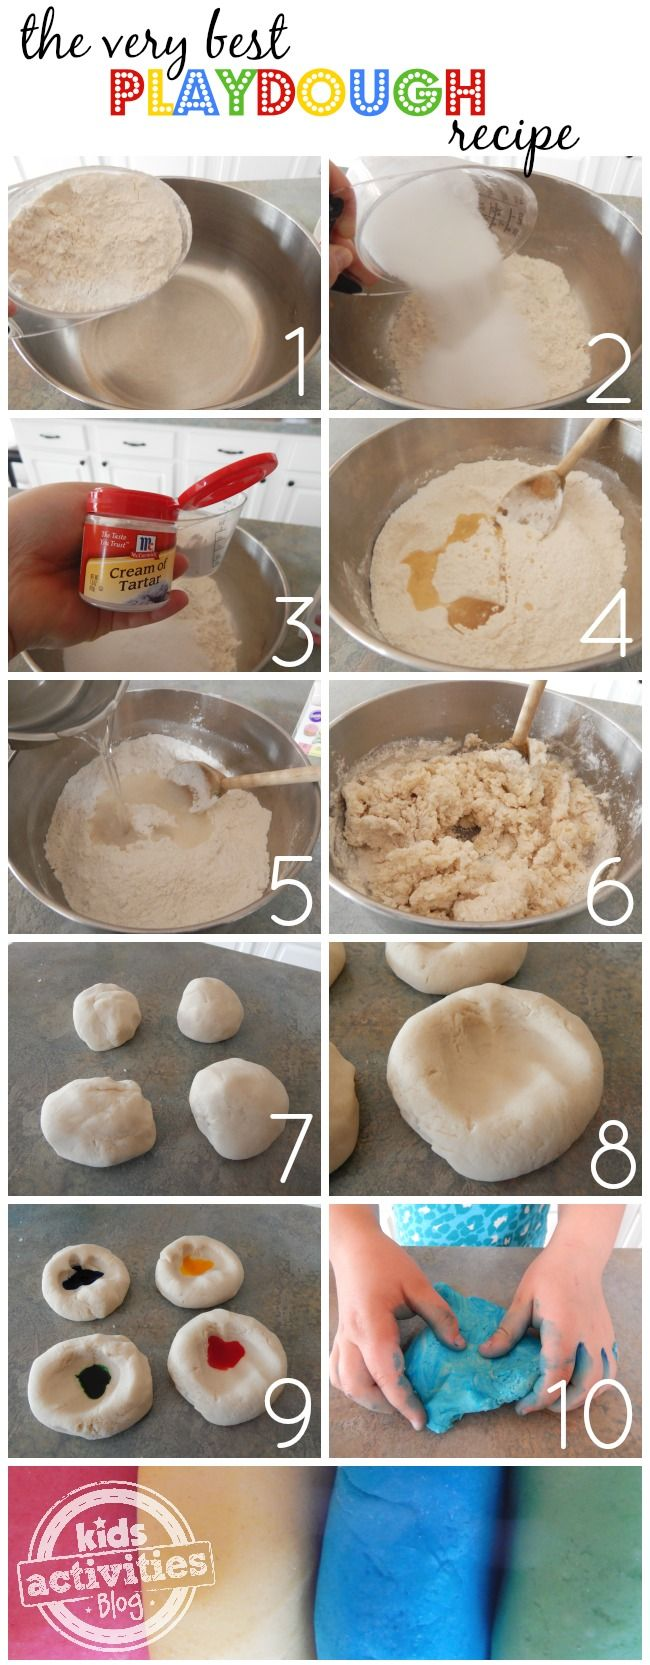 Pin by Emily Hartter on Kid Crafts Projects Activities